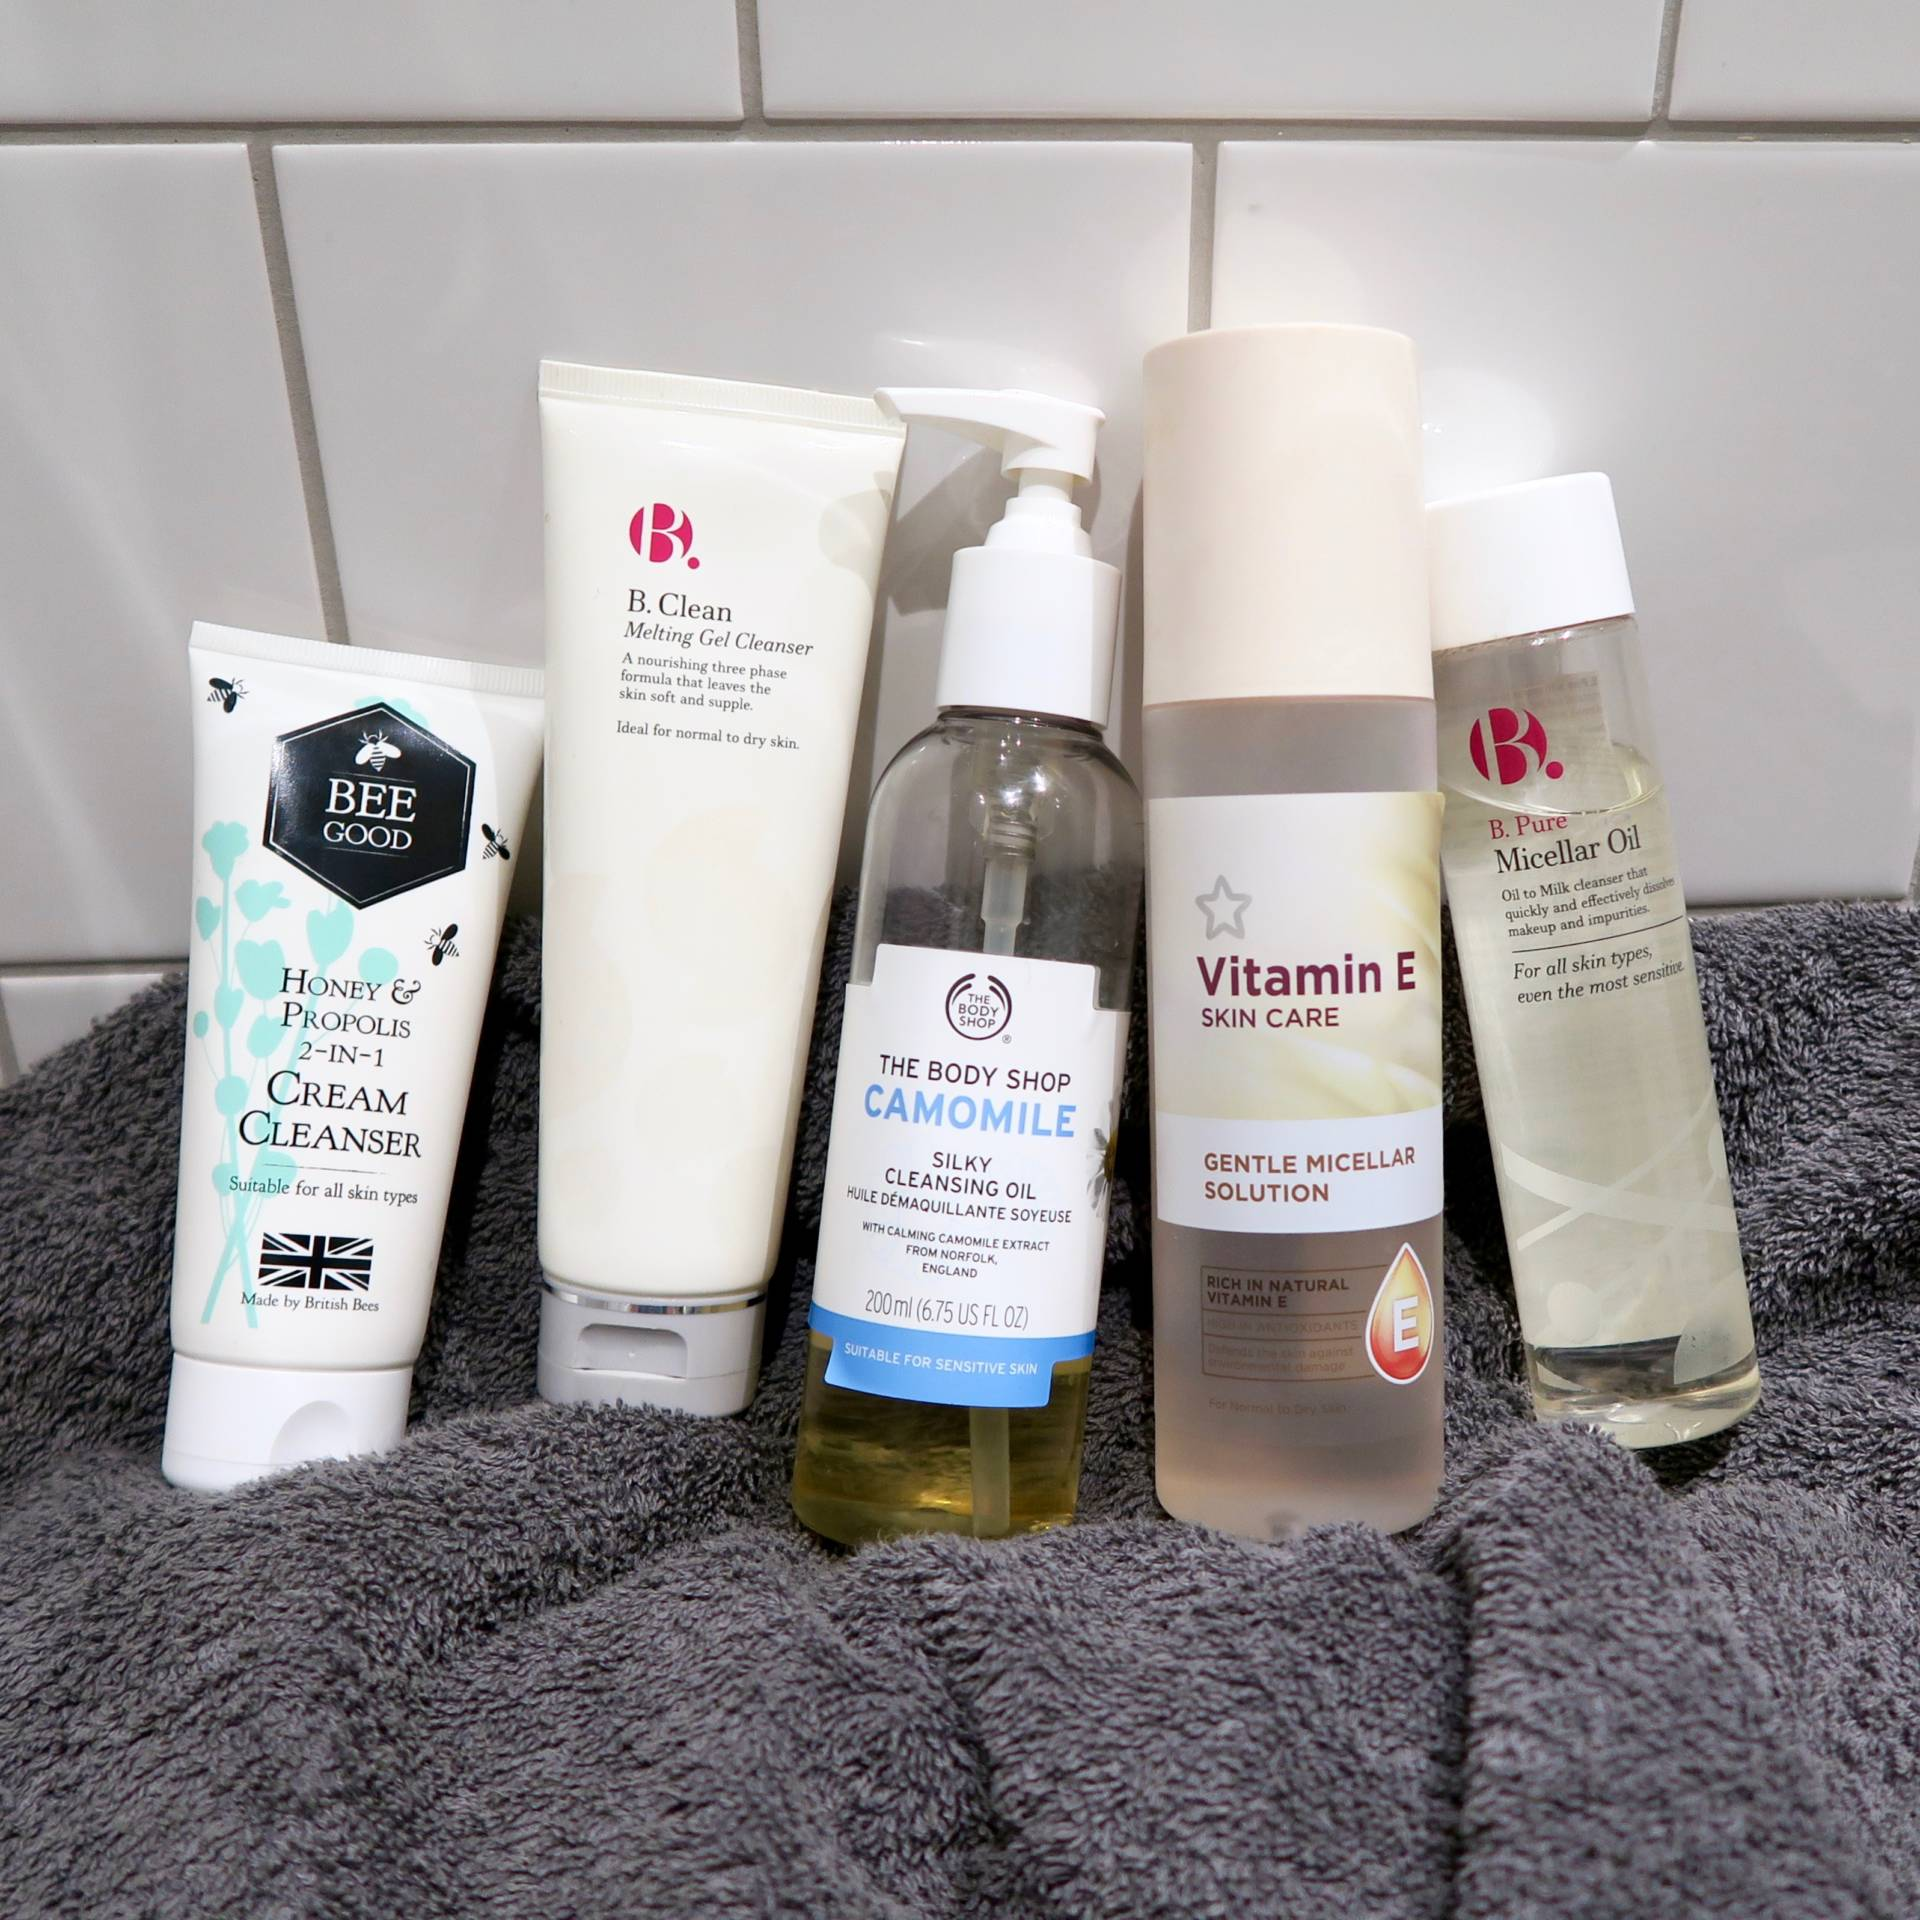 5 best budget cleansers for sensitive skin // Talonted Lex